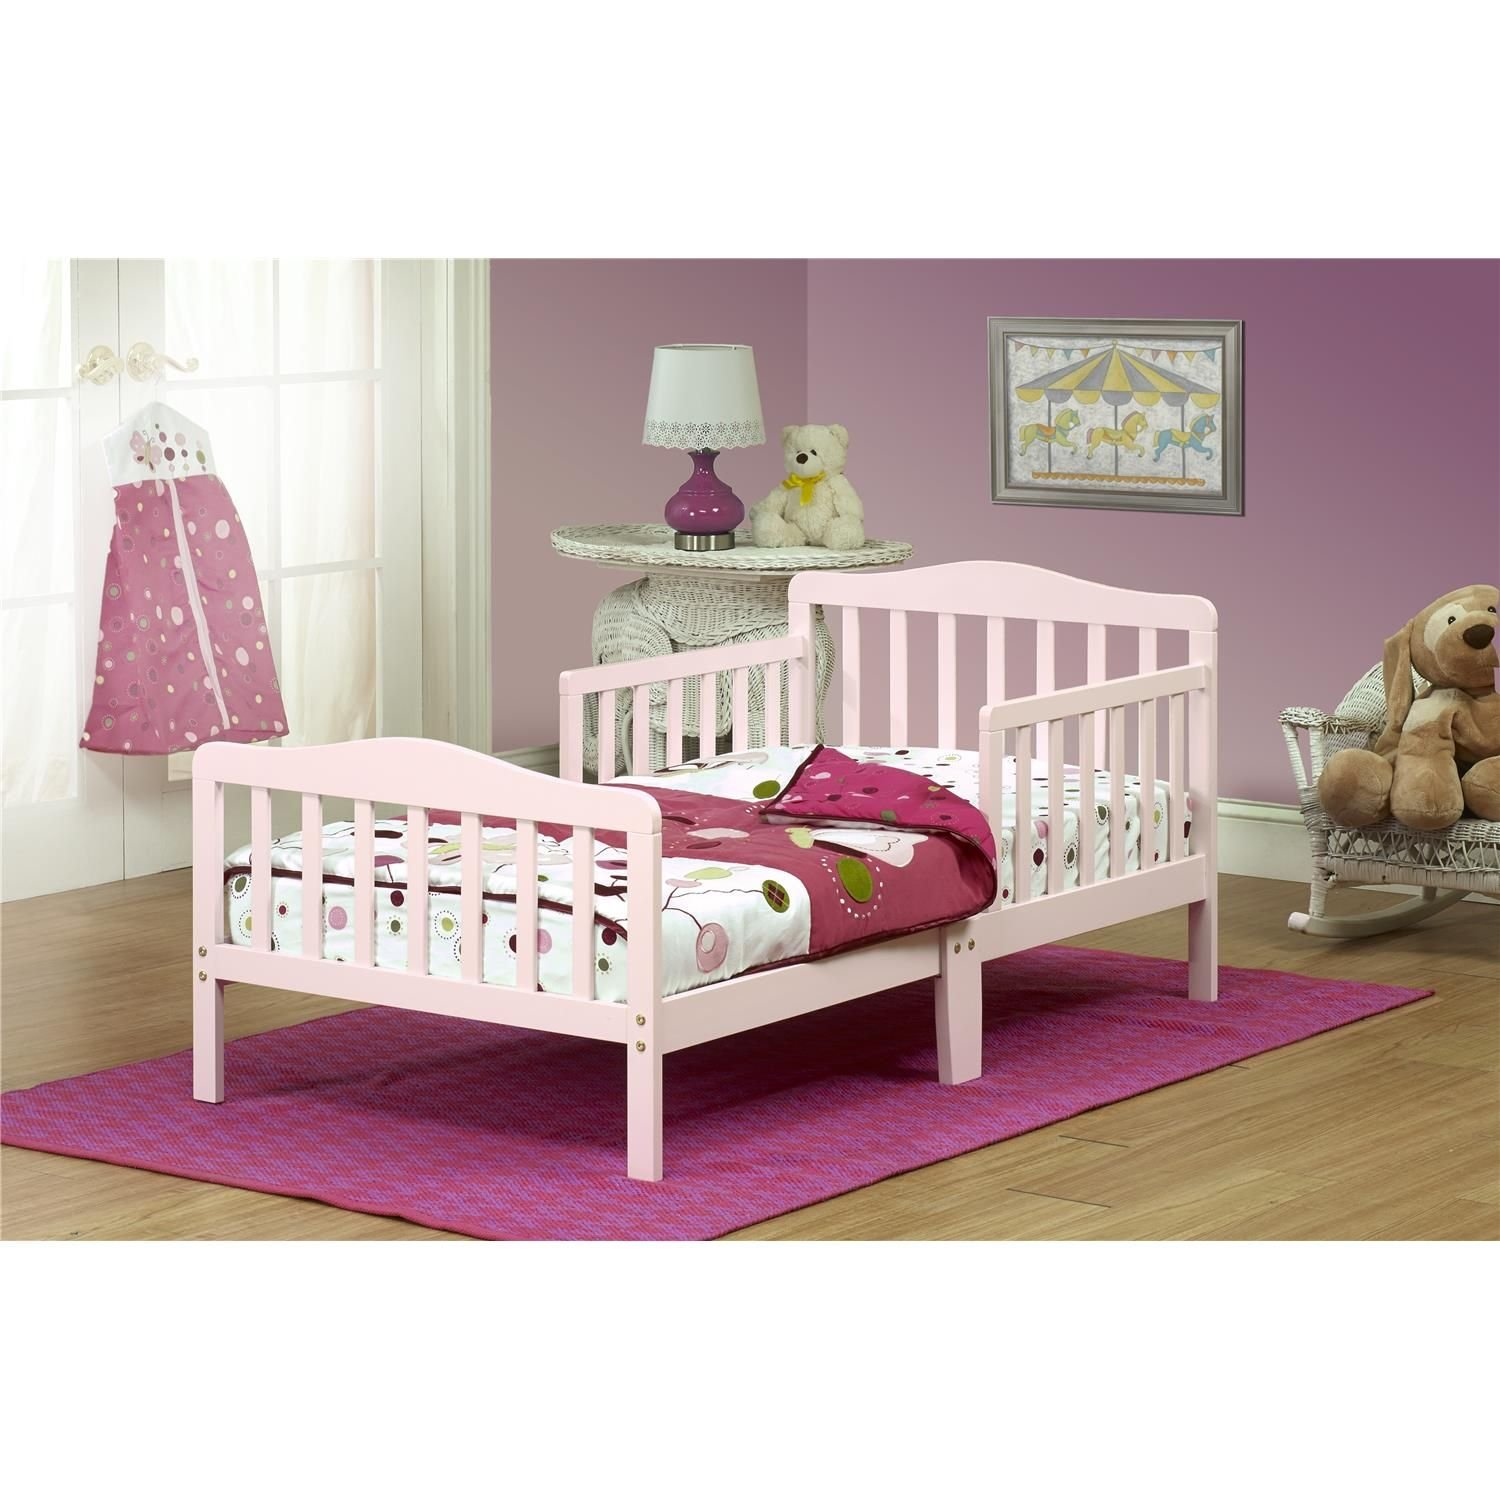 Orbelle 3-6T Toddler Bed, Natural Orbelle Trading 401N